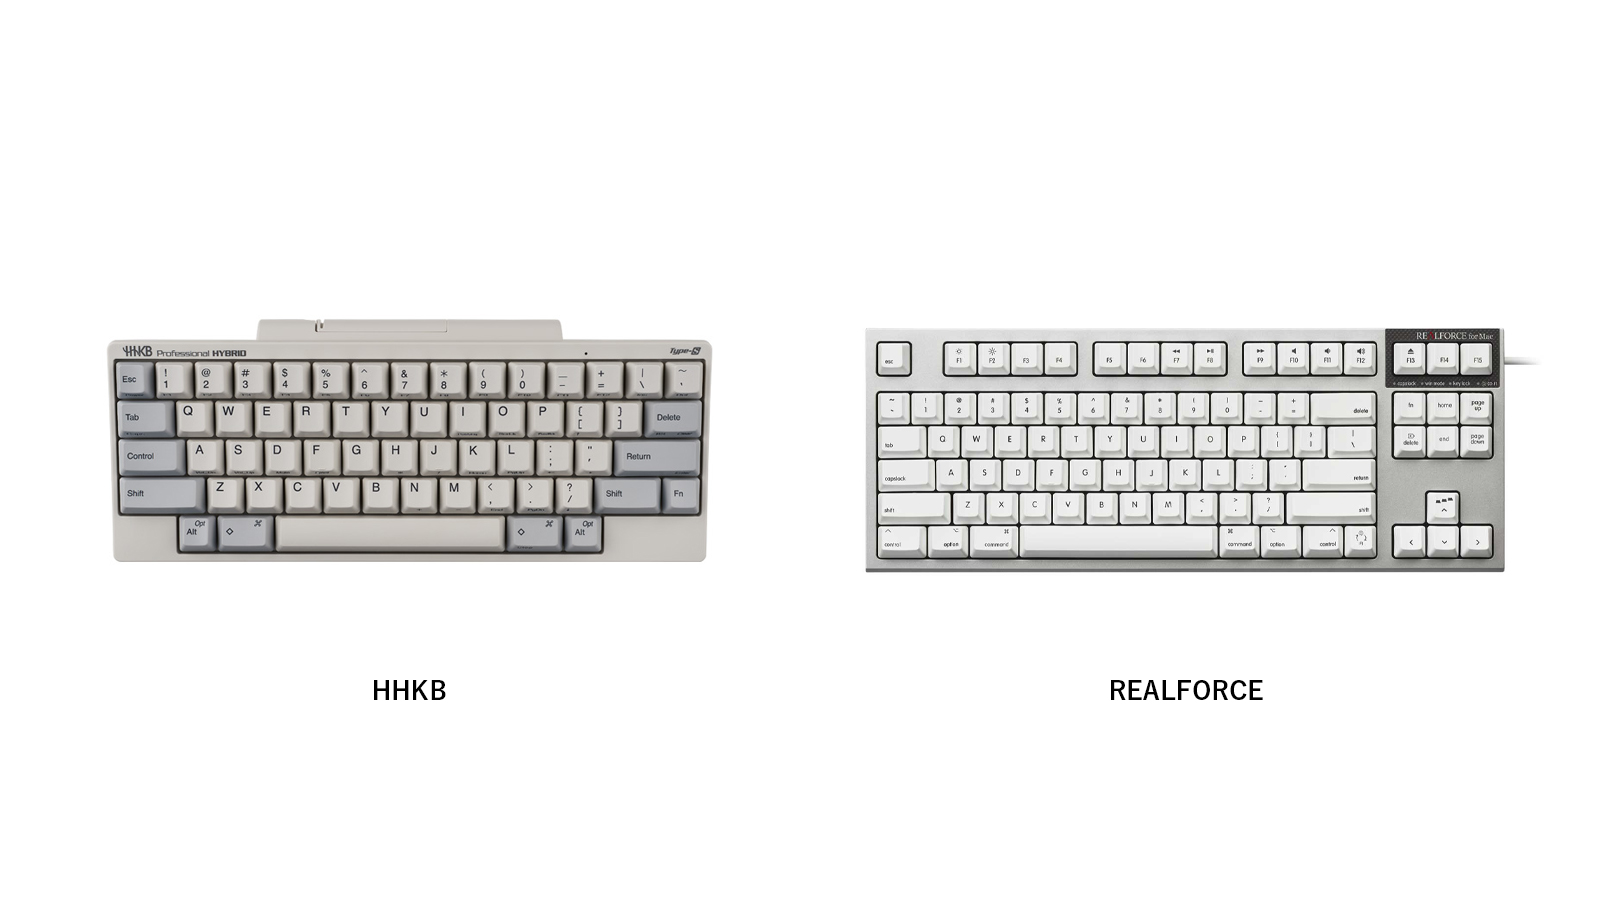 HHKBとREALFORCE